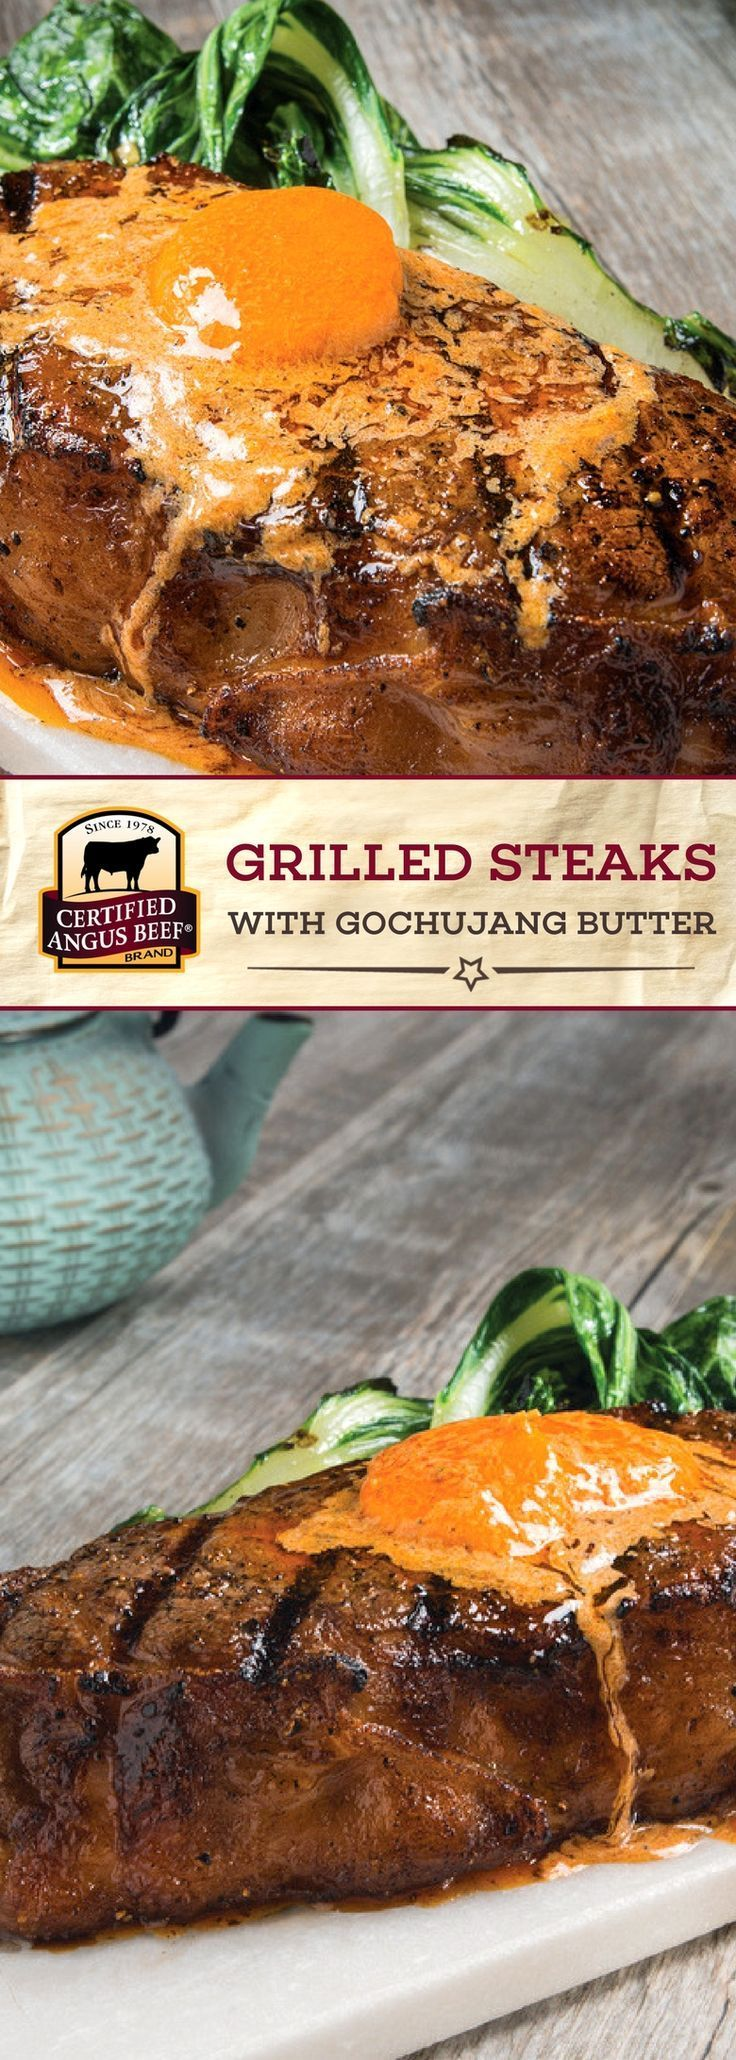 Certified Angus Beef®️️️️️ brand Grilled Steaks with Gochujang Butter is made with the BEST New York strip steaks or tenderloin filets for a delicious dinner! The gochujang butter, made with garlic, sesame oil, honey and other bright flavors, brings out the bold and beefy taste of this dish! #bestangusbeef #certifiedangusbeef #beefrecipe #dinnertime #steakrecipe